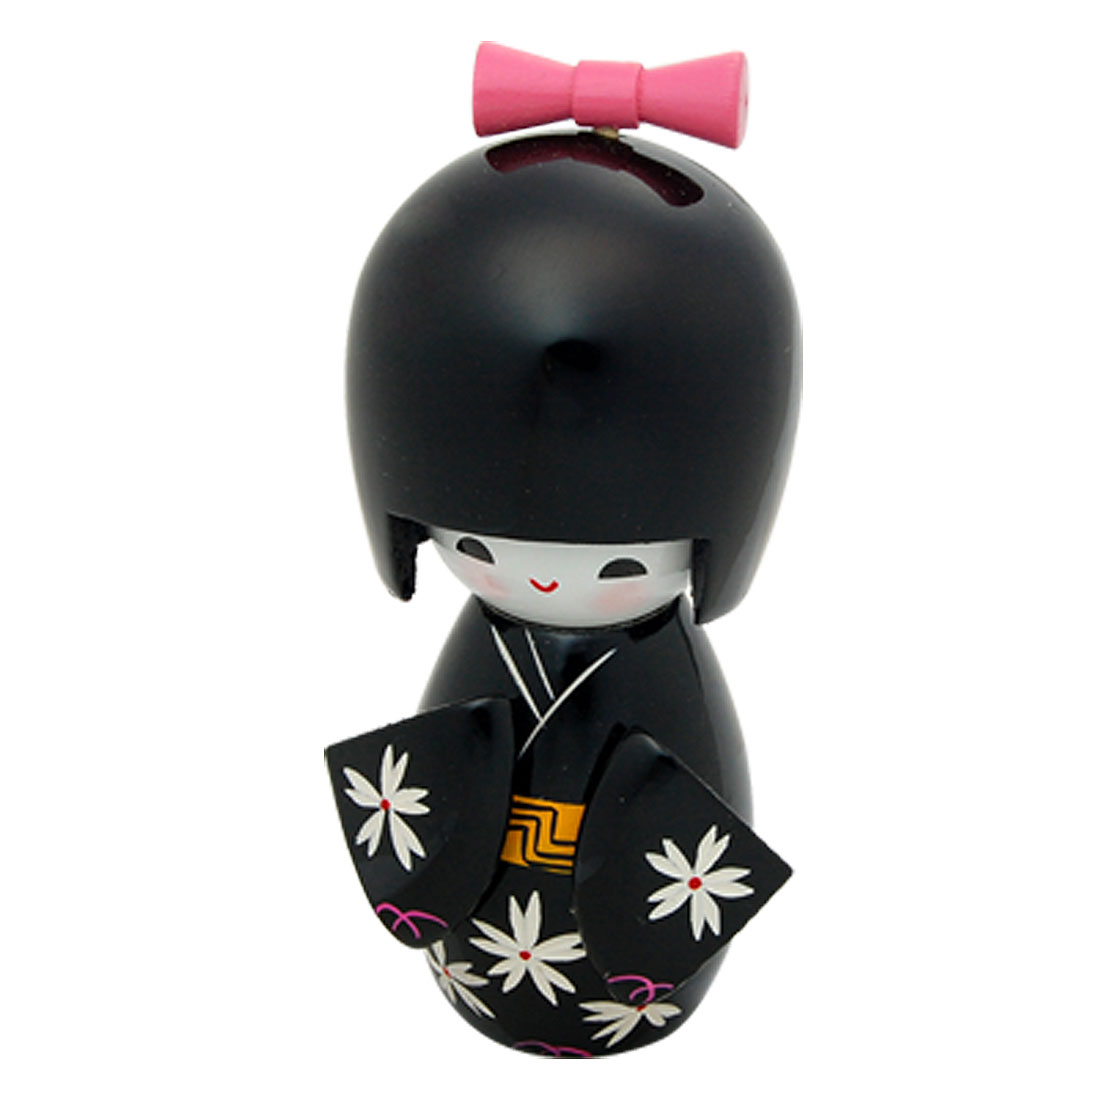 Lovable Girl in Black Kimono Kokeshi Wooden Doll Toy